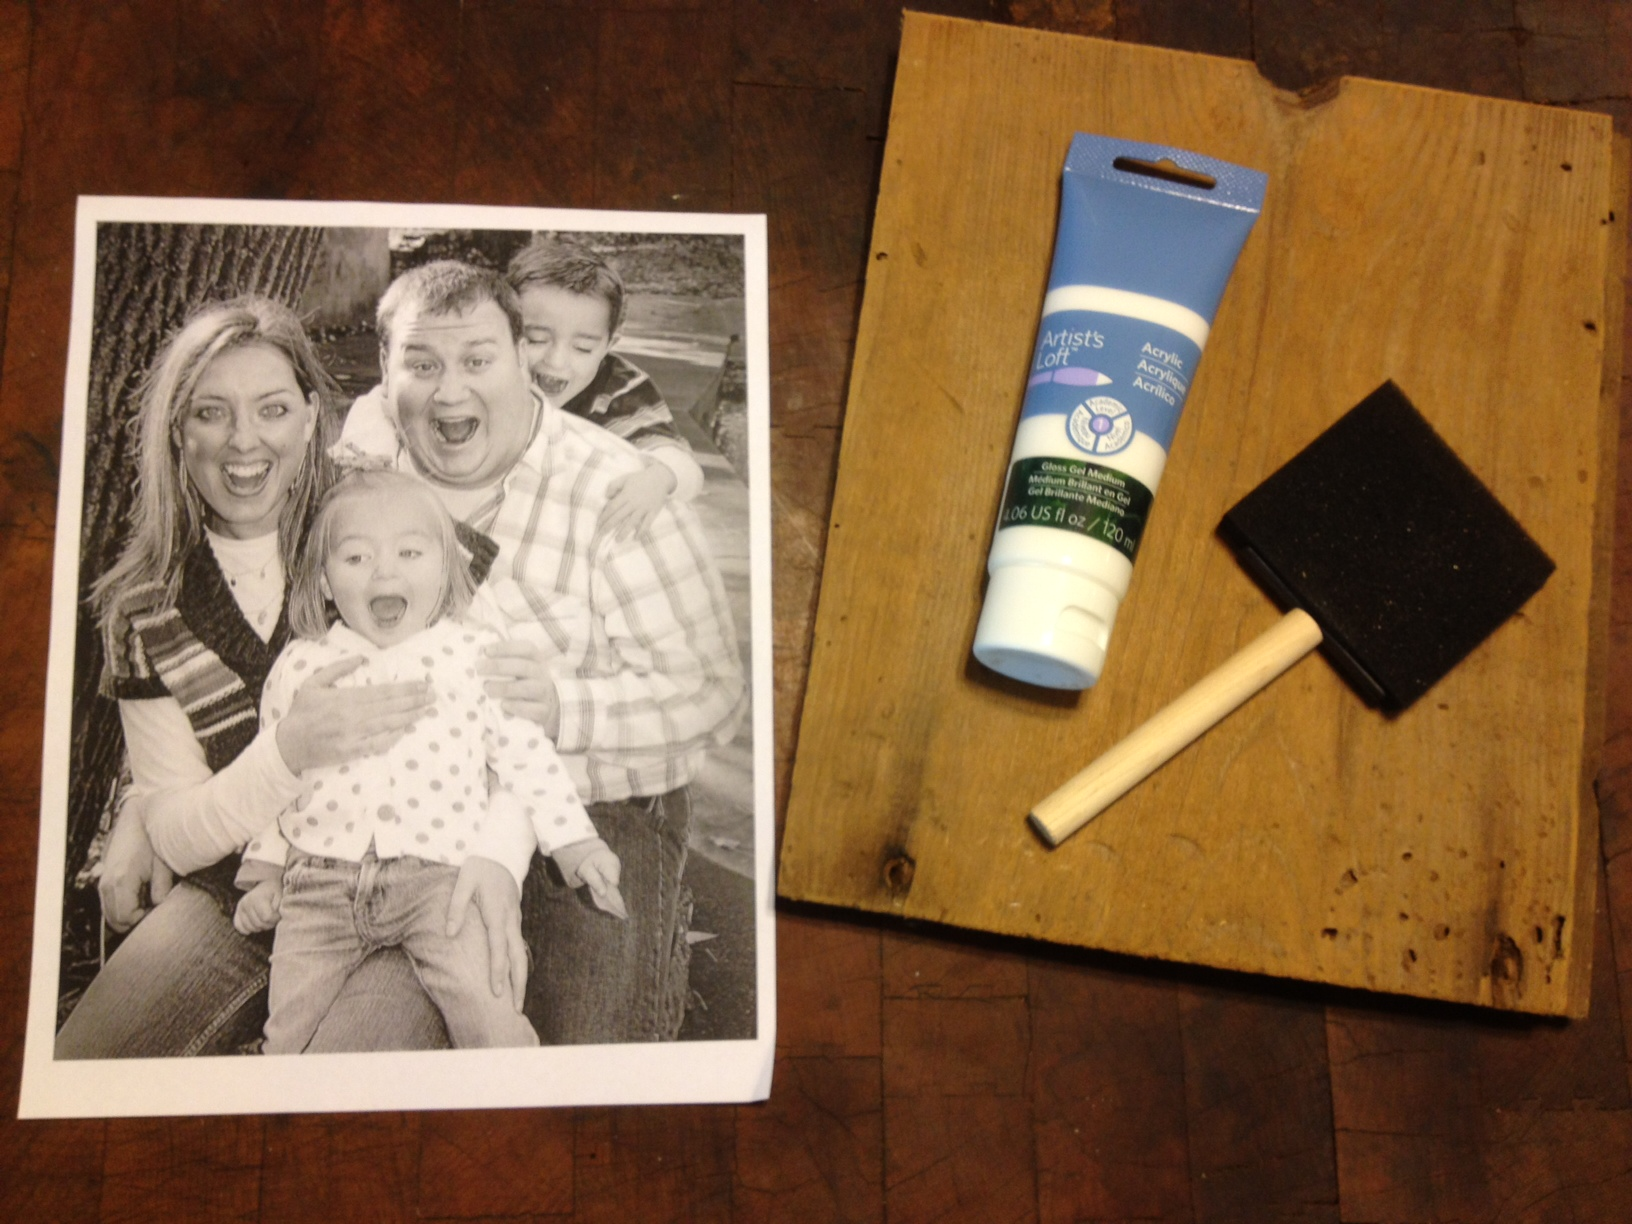 How To Transfer Prints To Wood: An Awesome